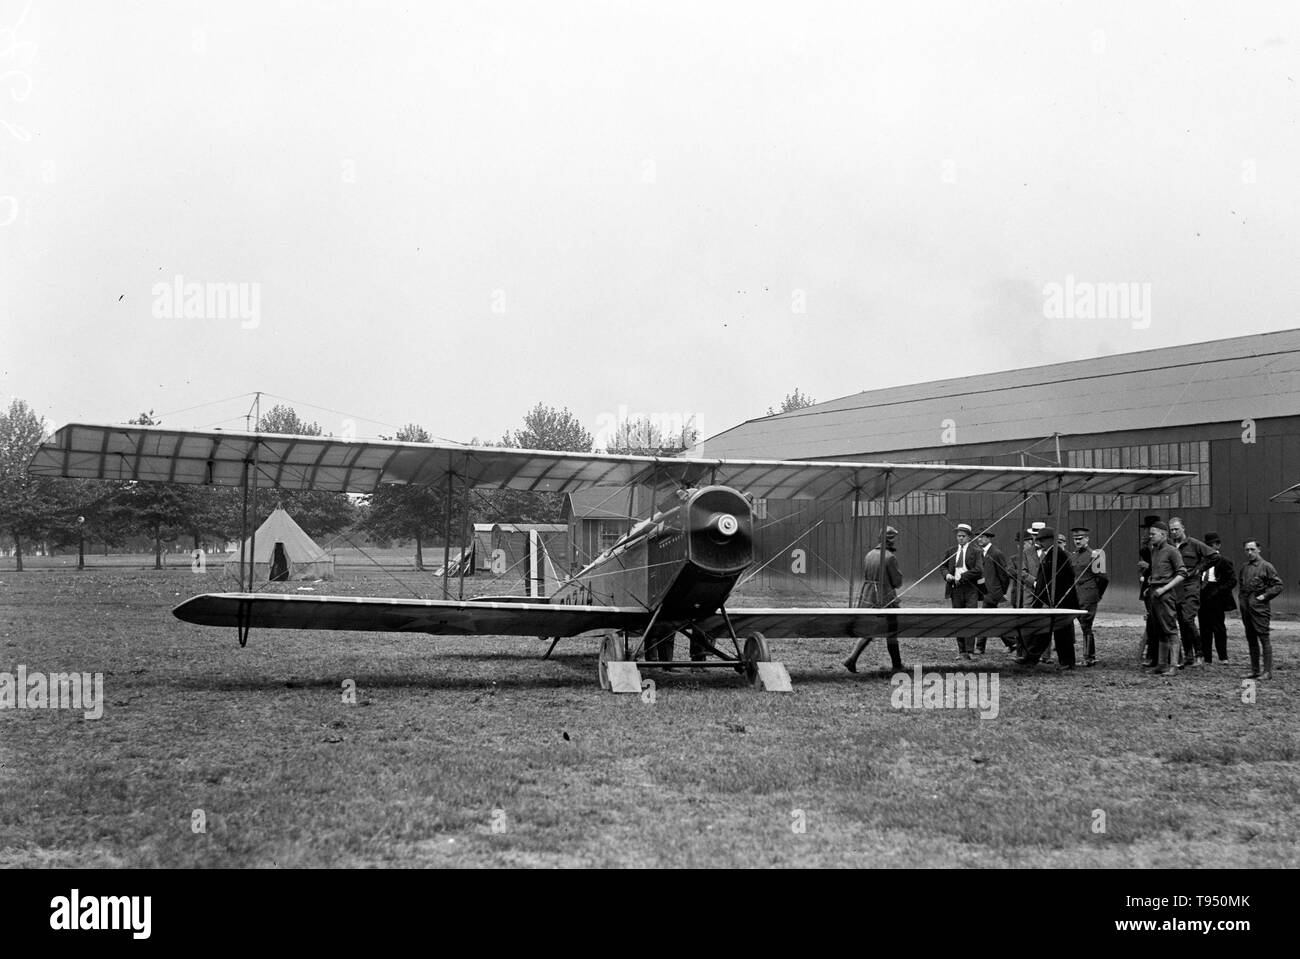 Entitled: 'Air mail. Inauguration of service, Polo Field.' The first scheduled U.S. Air Mail service began on May 15, 1918, using six converted United States Army Air Service Curtiss JN-4HM 'Jenny' biplanes flown by Army pilots under the command of Major Reuben H. Fleet and operating on a route between Washington, D.C. (Washington Polo Grounds) and New York City (Belmont Park) with an intermediate stop in Philadelphia (Bustleton Field). - Stock Image